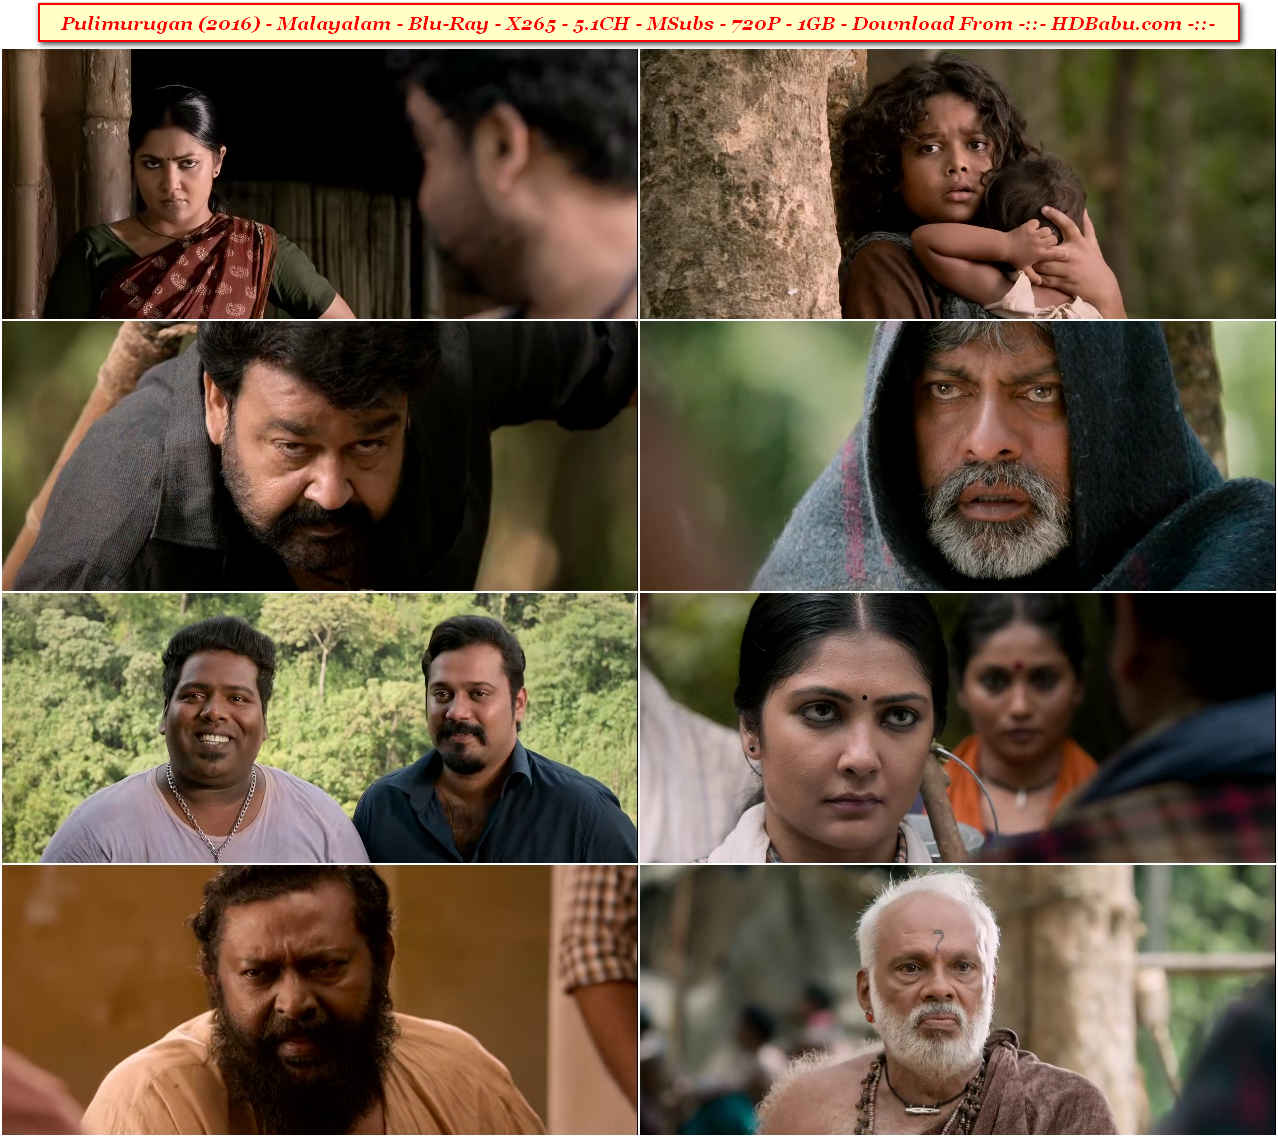 Pulimurugan Full Movie Download